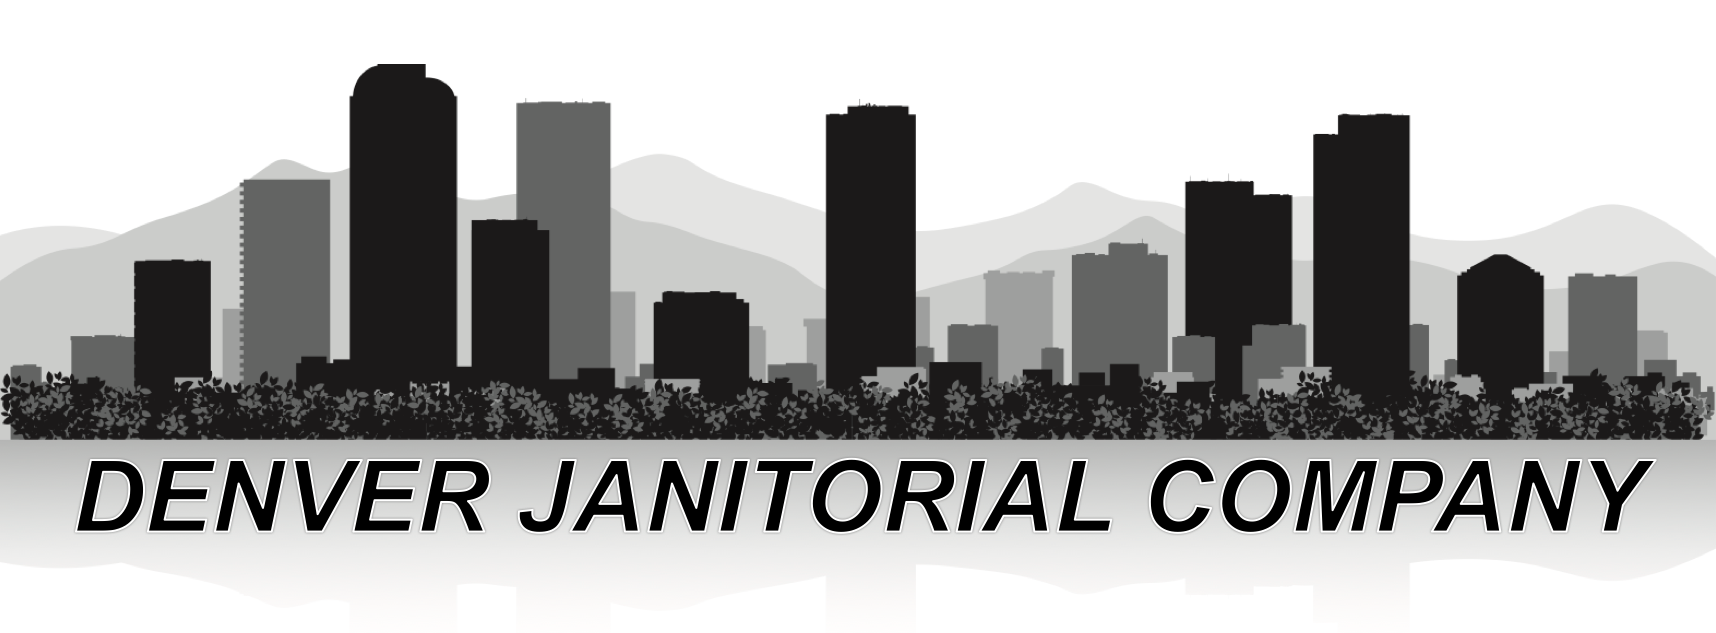 Denver Janitorial Company